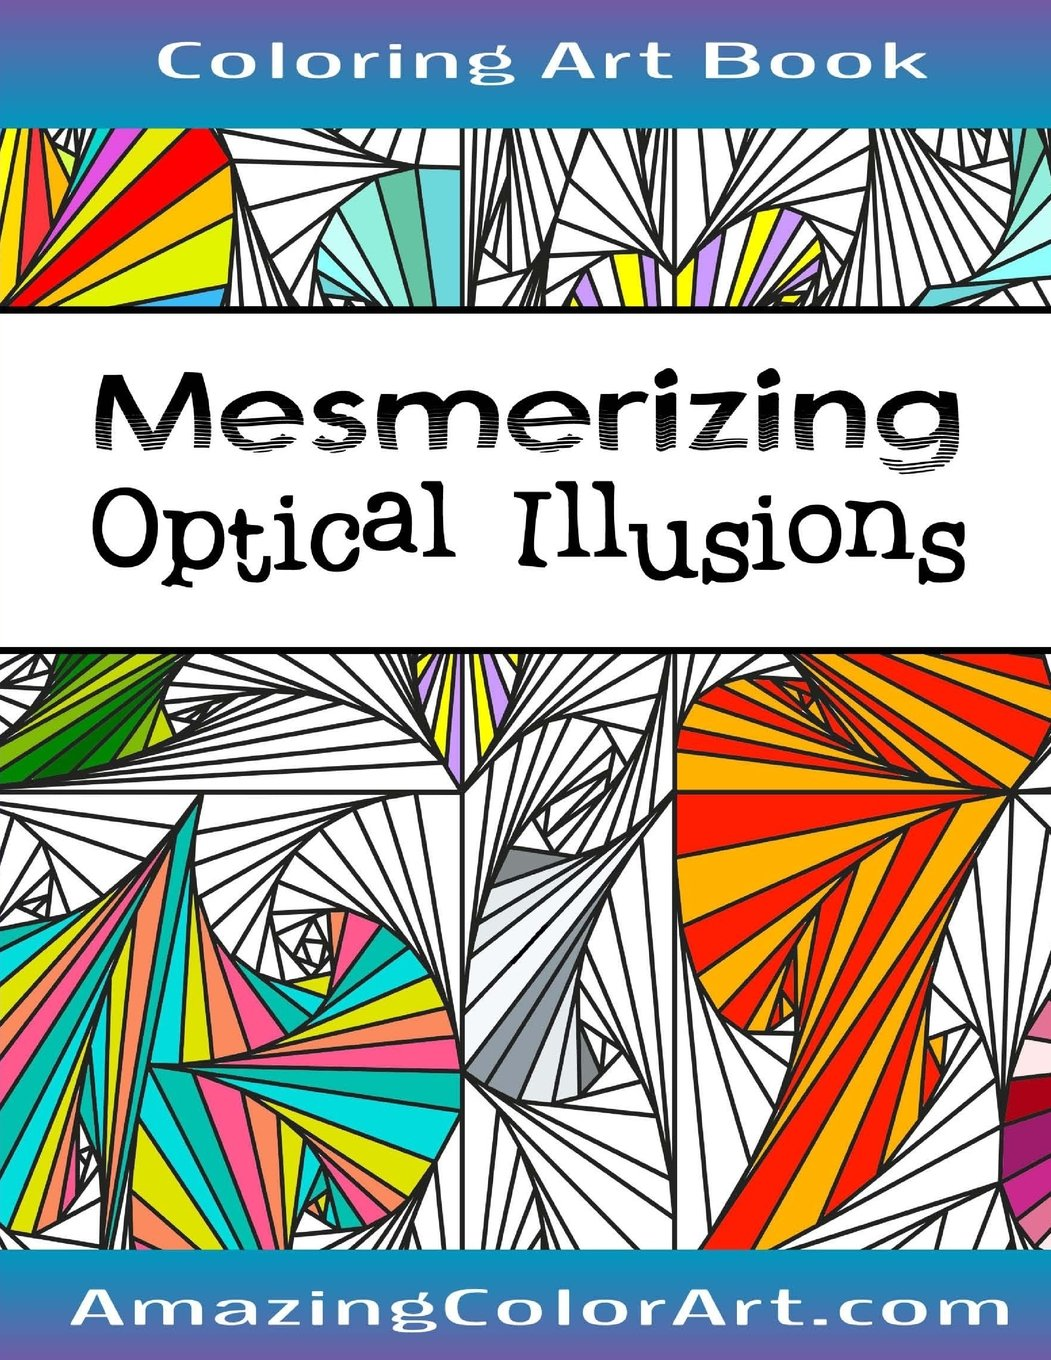 Mesmerizing Optical Illusions Coloring Book For Adults Featuring